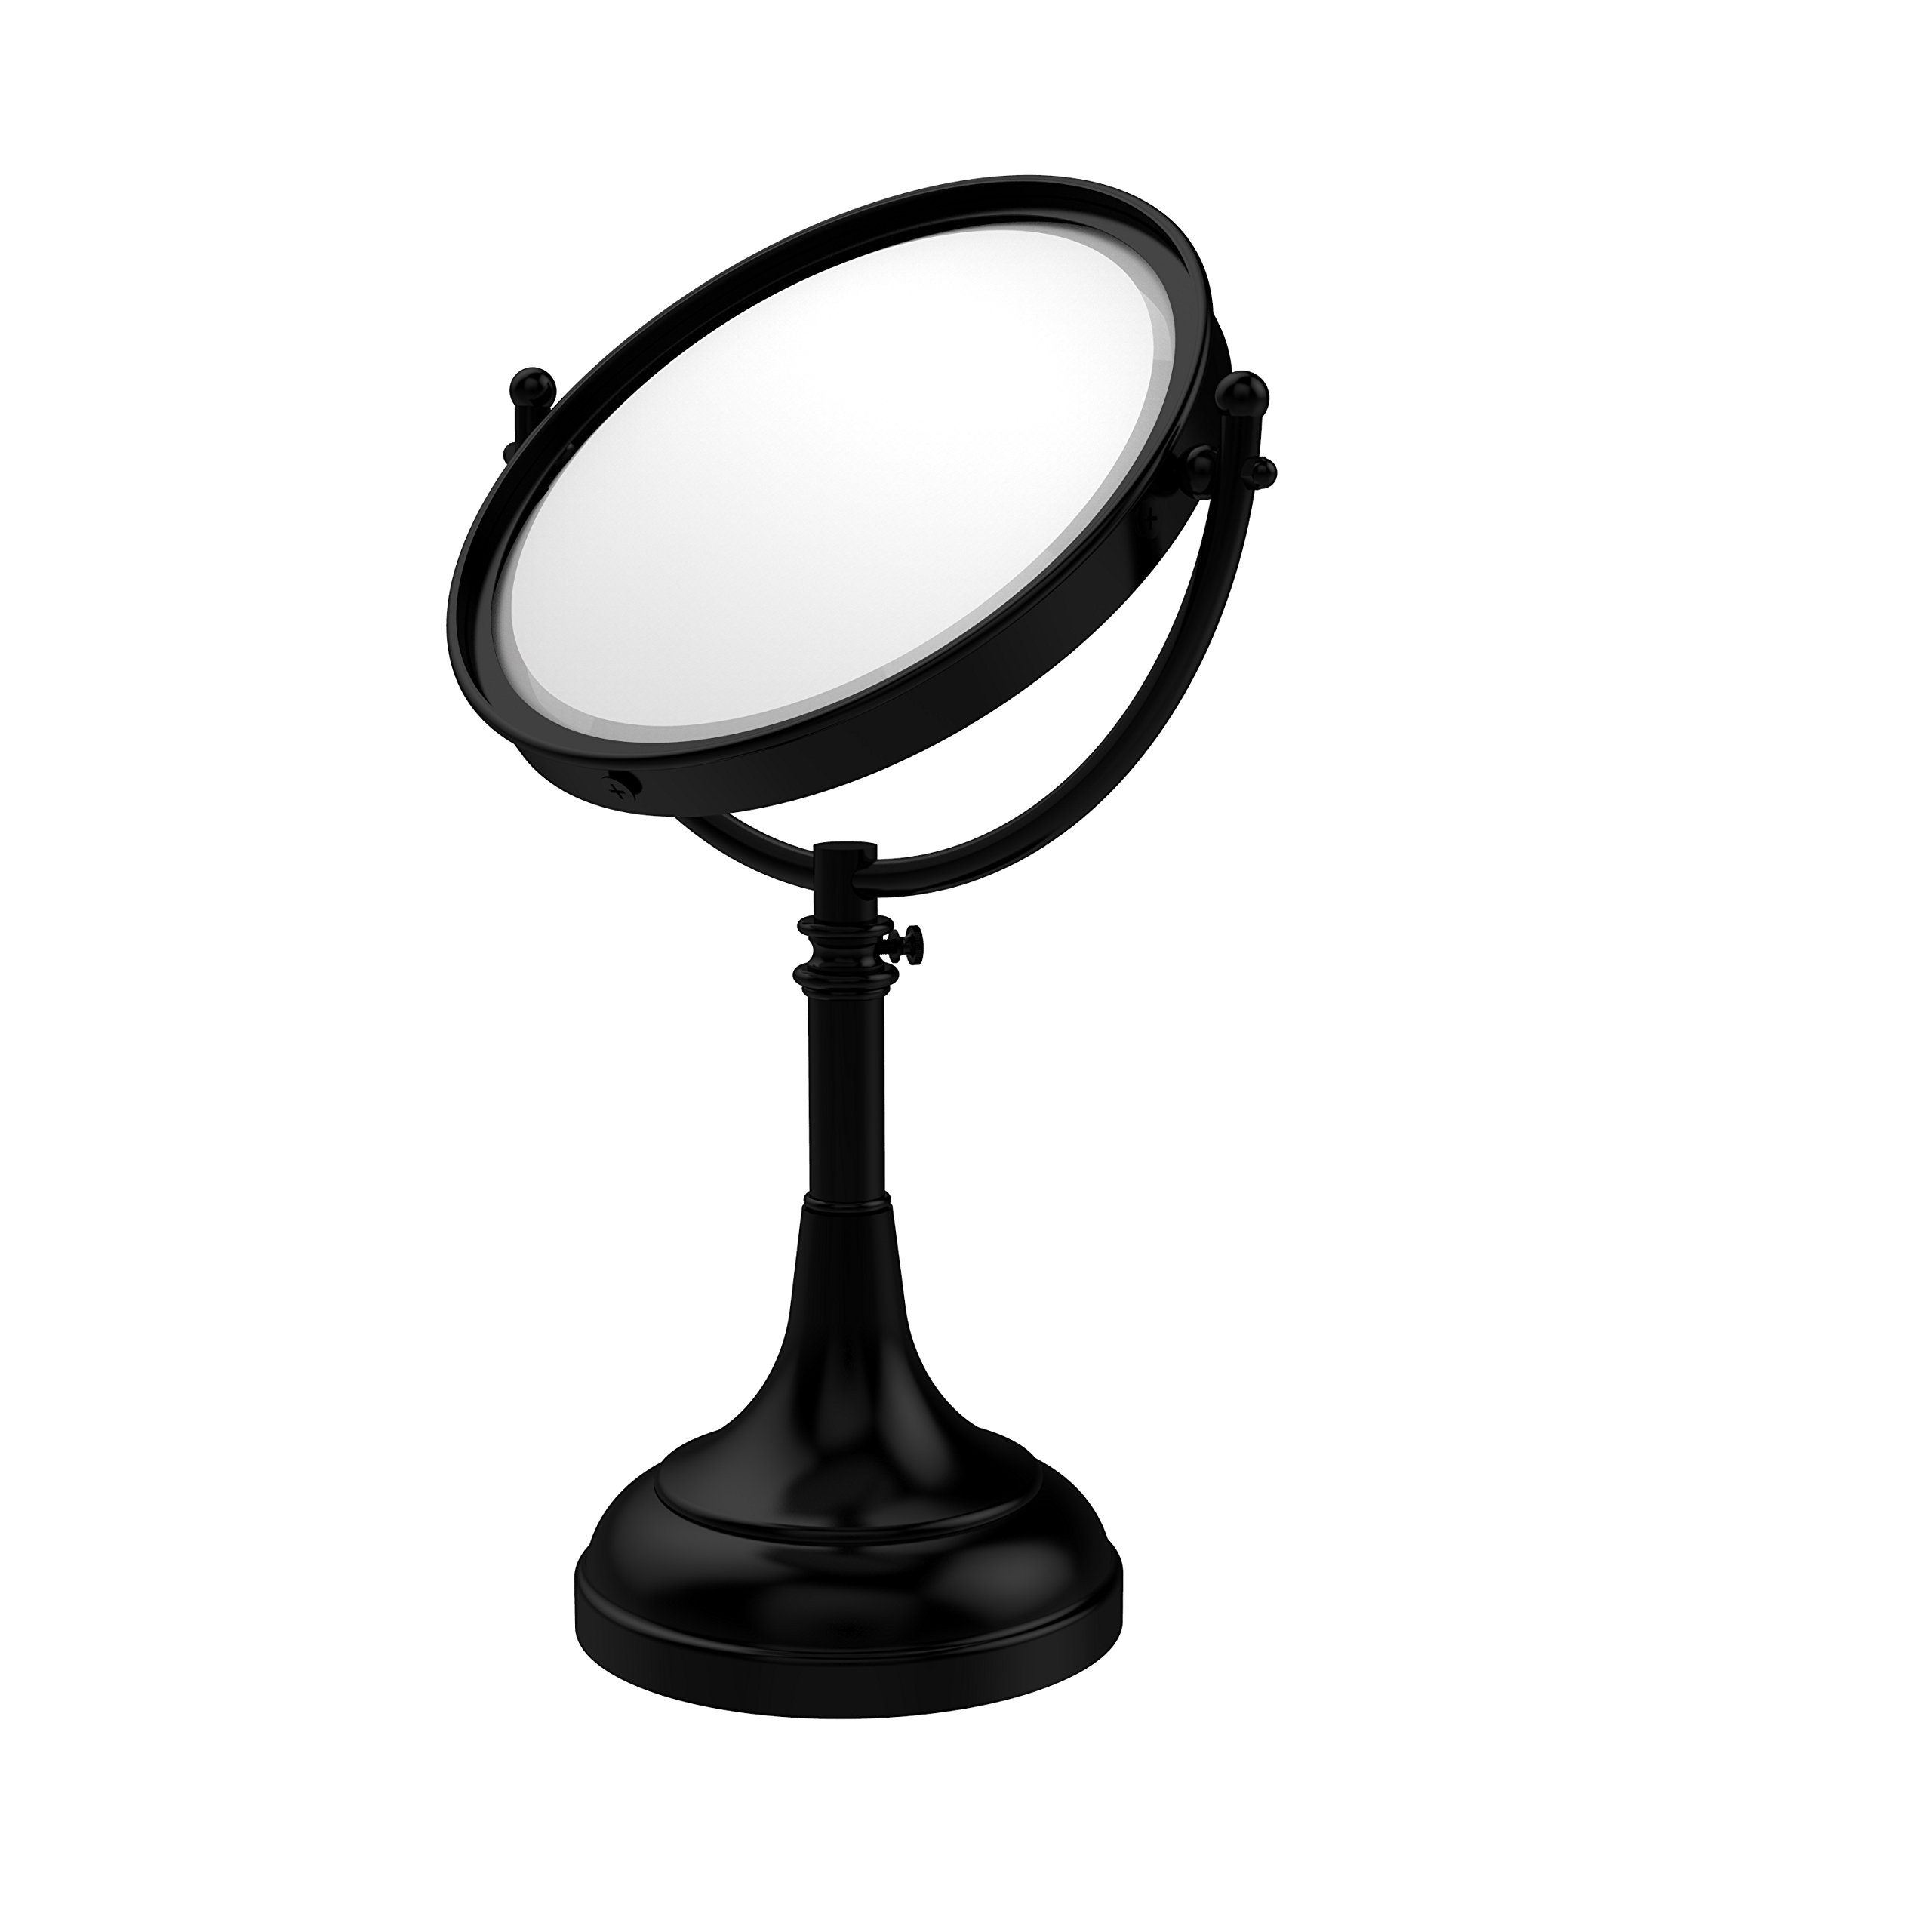 Allied Brass DM-1/4X-BKM 8-Inch Table Mirror with 4x Magnification, Matte Black